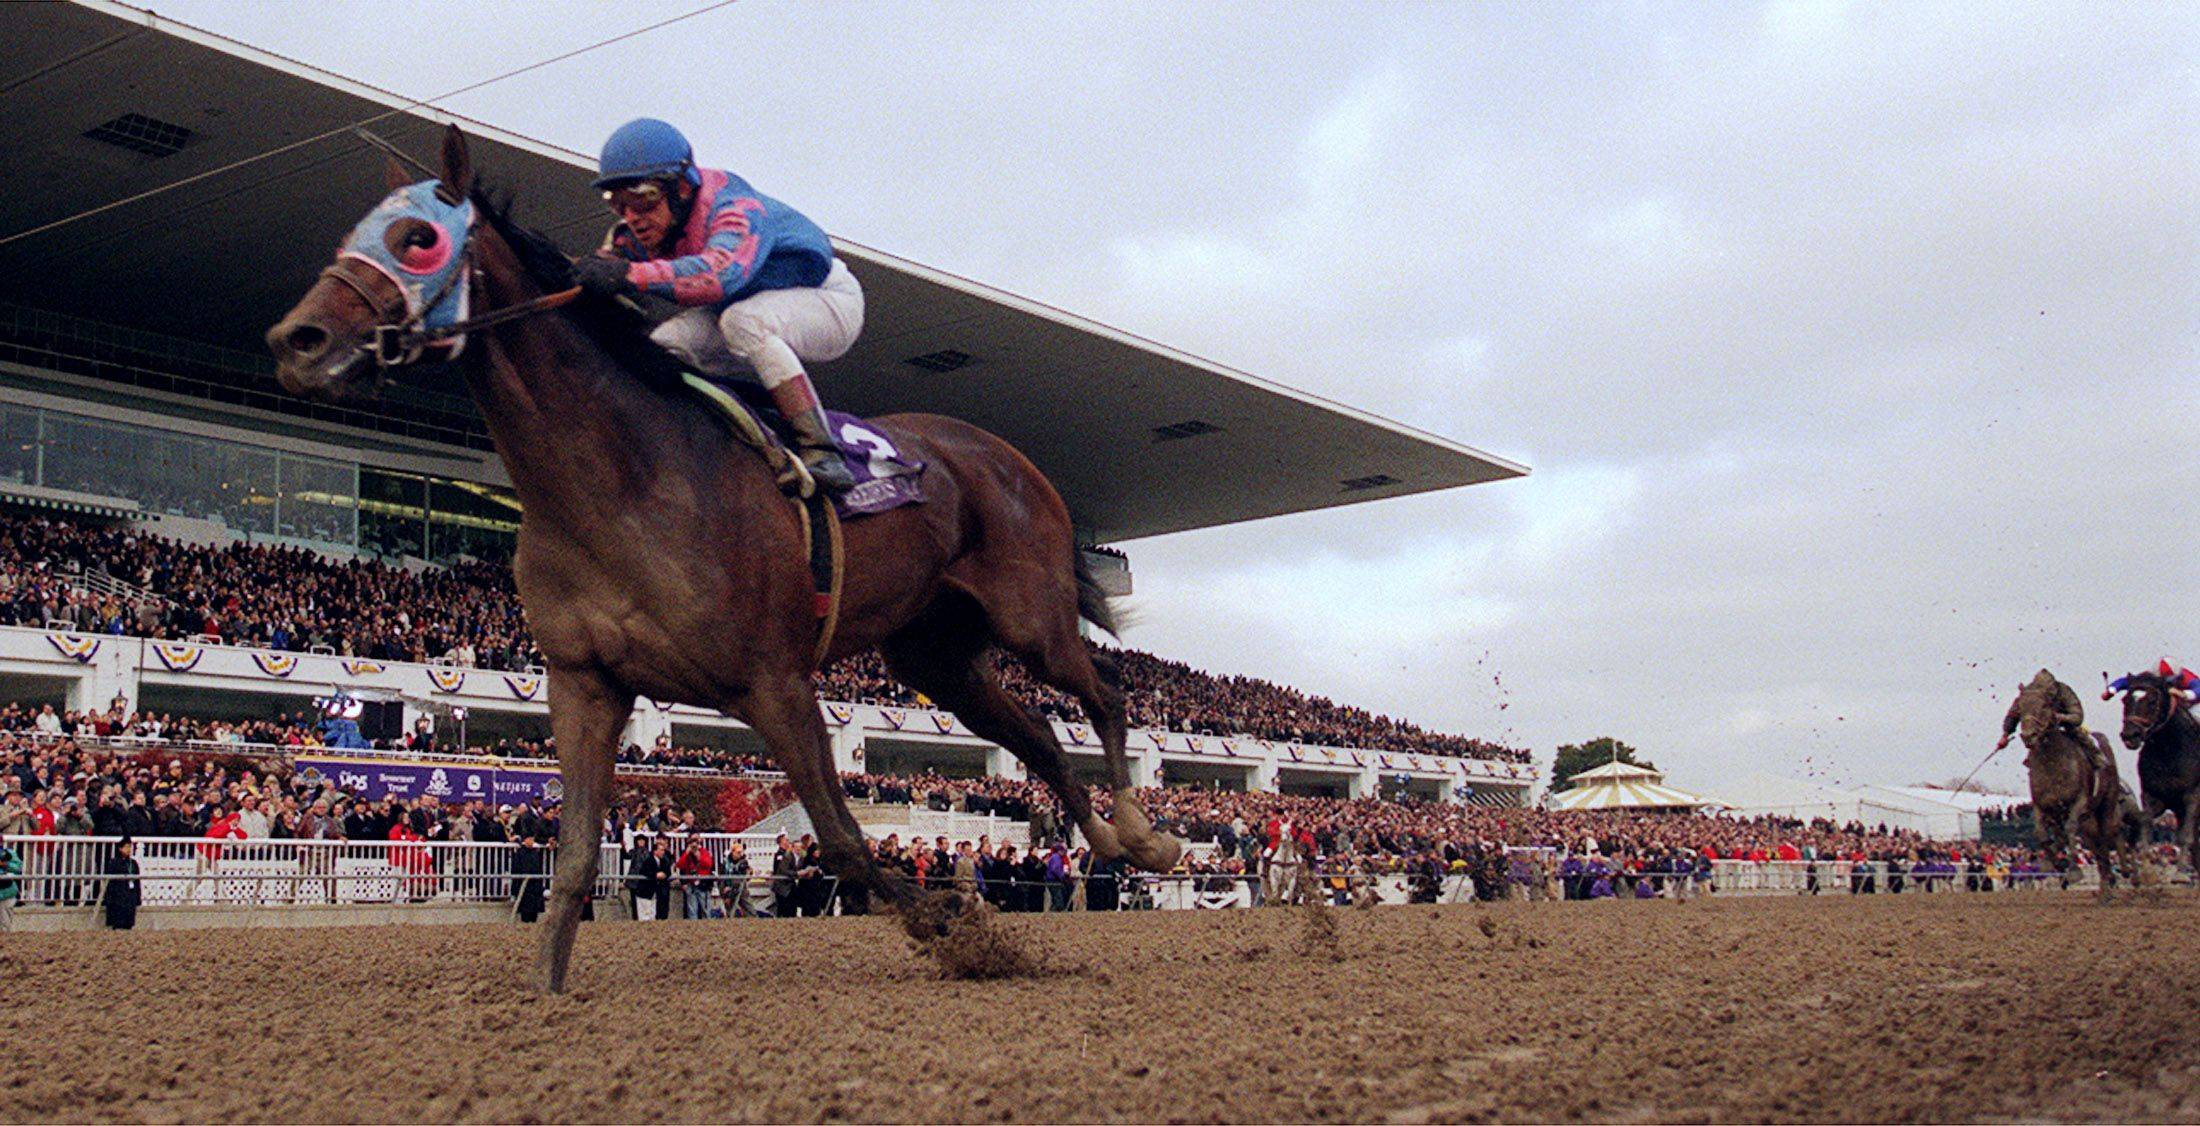 Volponi and jockey Jose Santos cross the finish to win the Breeders Cup Classic in 2002 at Arlington Park. Horse racing advocates say Gov. Pat Quinn made the wrong choice when he trimmed slots at race tracks but kept five casinos in his gambling alternative.